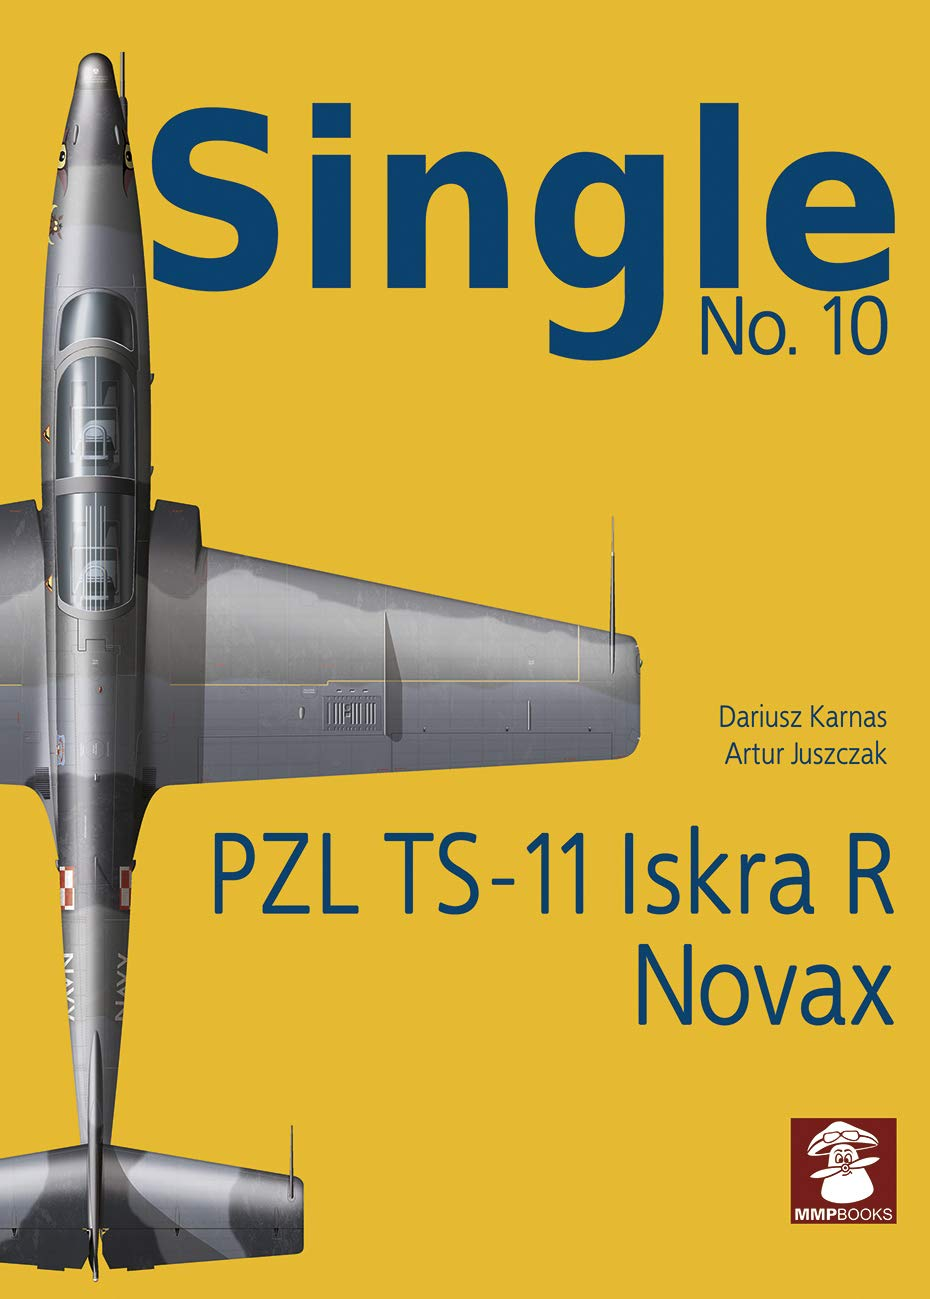 Image OfSingle 10: PZL Ts-11 Iskra R Novak